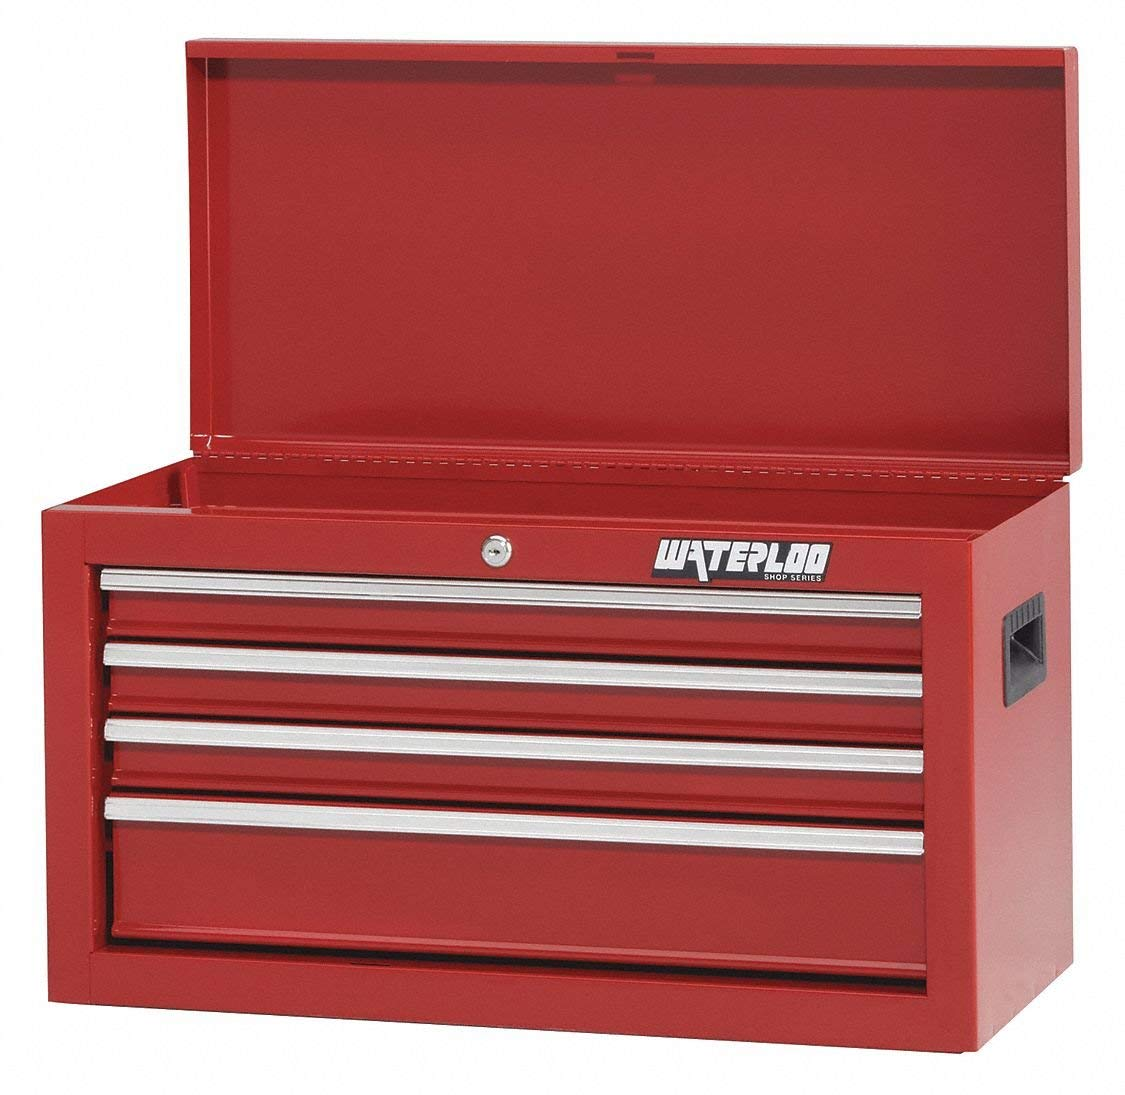 "Red Light Duty Top Chest, 15-3/16"" H X 26"" W X 12"" D, Number of Drawers: 4"